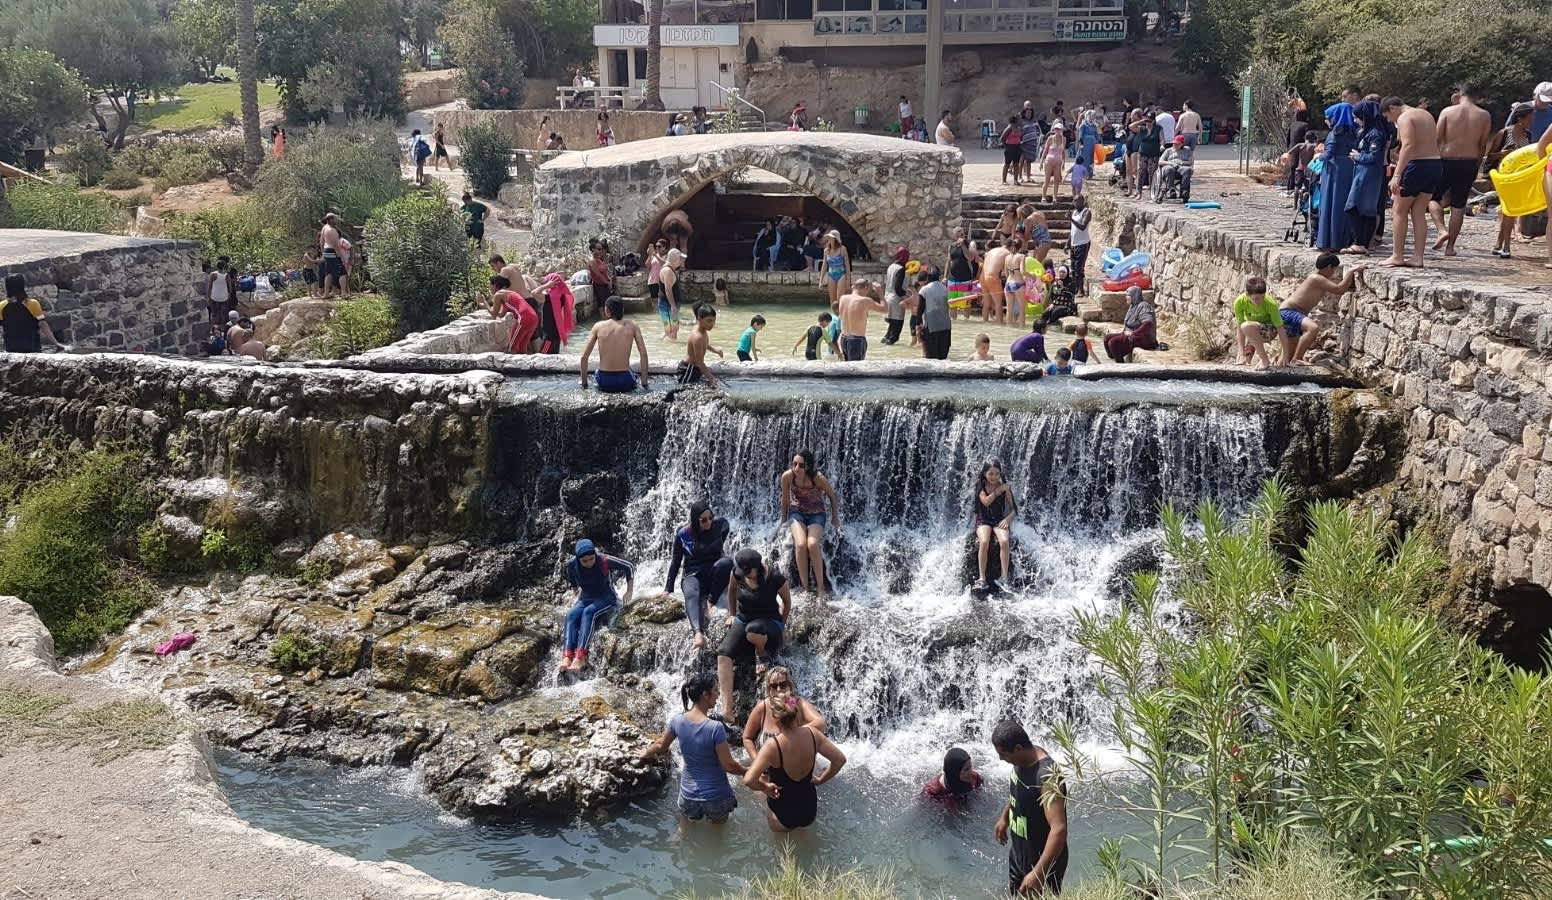 Israelis enjoy the warm weather at Gan Hashlosha National Park.